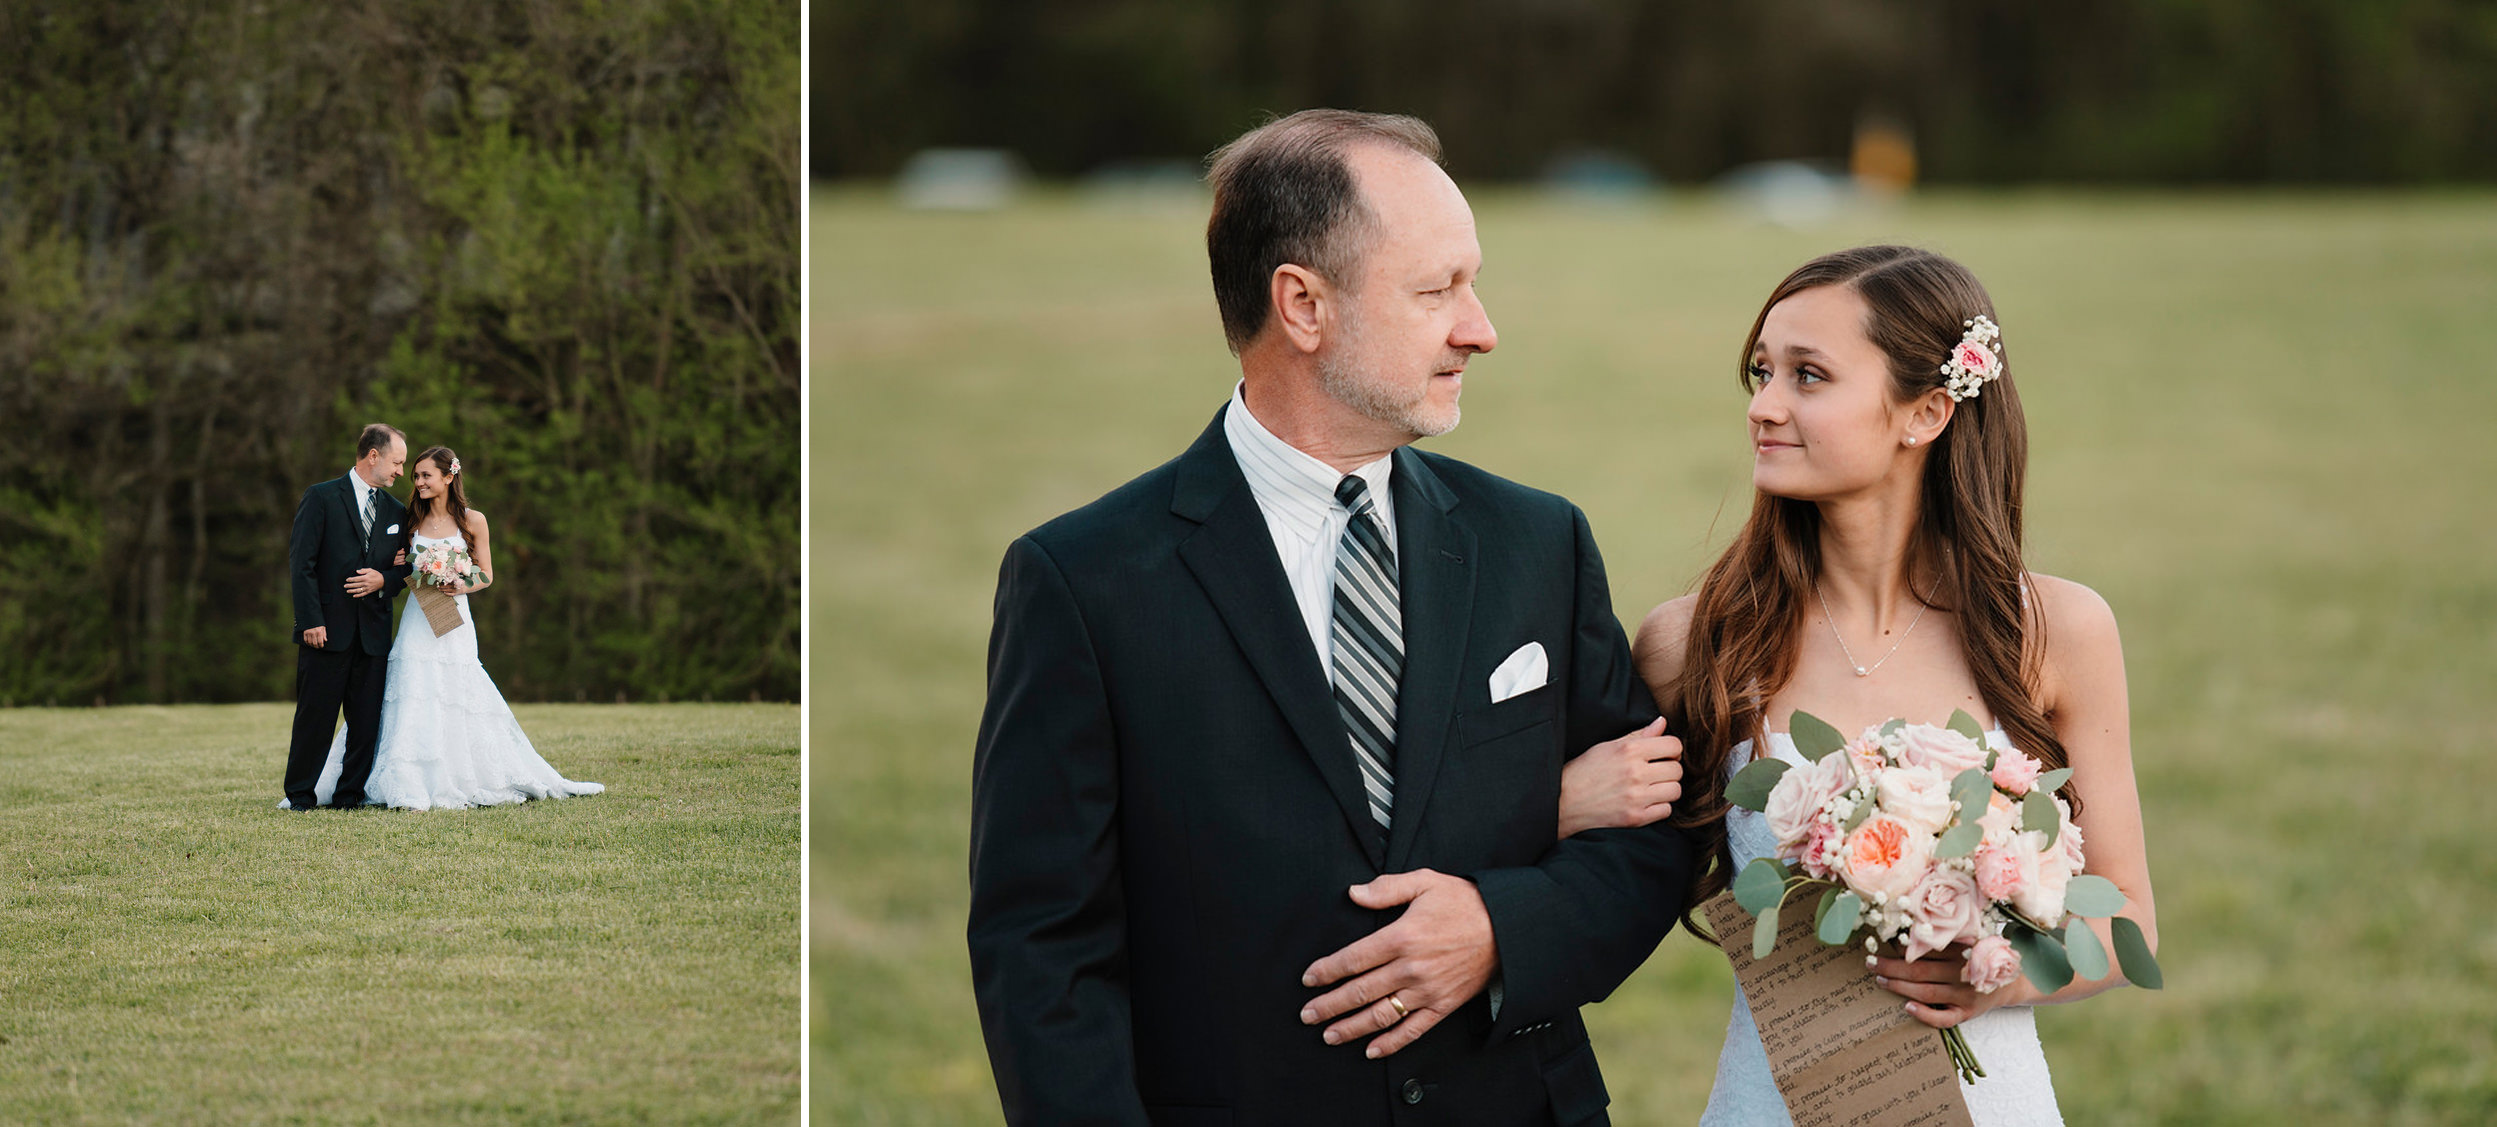 A bride shares a moment with her dad before they walk down the aisle of her Buffalo River Wedding by Arkansas Adventure Destination Elopement Photographer Colby and Jess